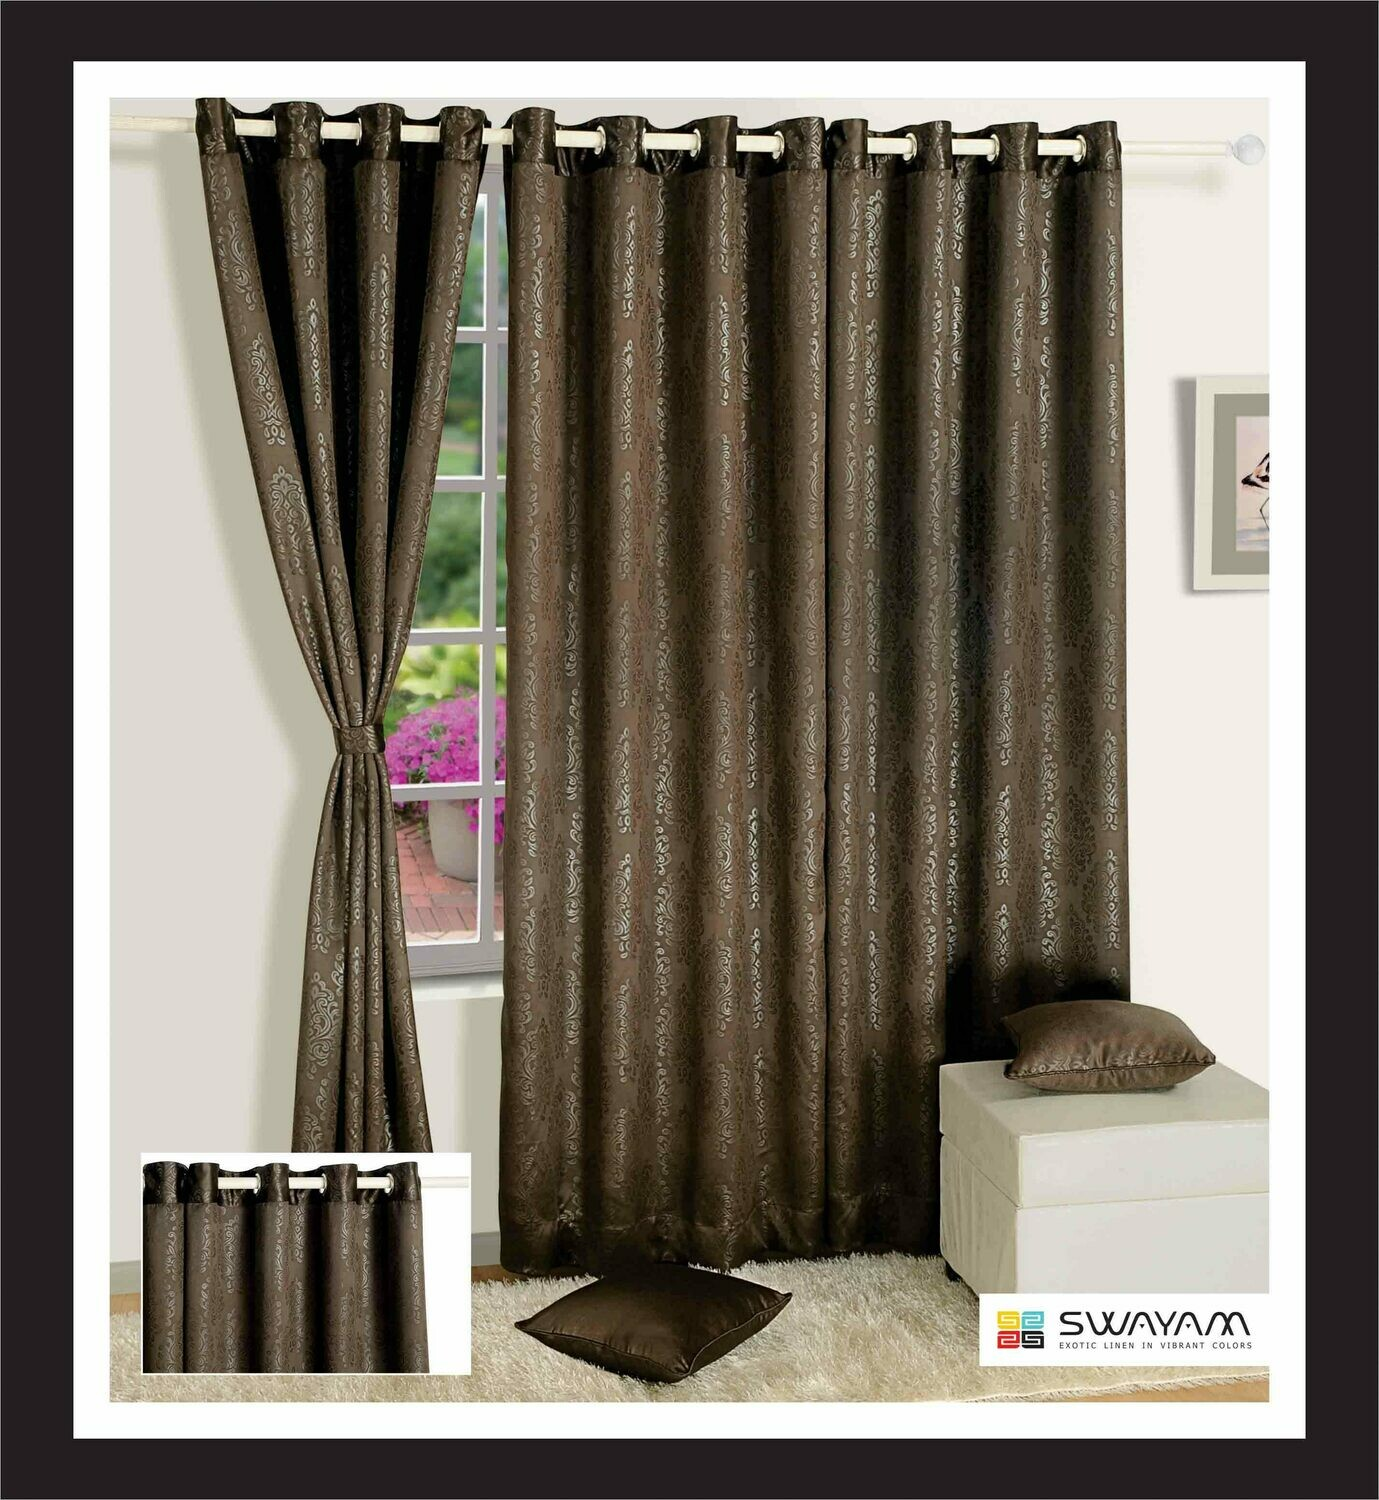 Swayam Choclate Brown Colour Paisley J&B Blackout Eyelet Curtain for Door